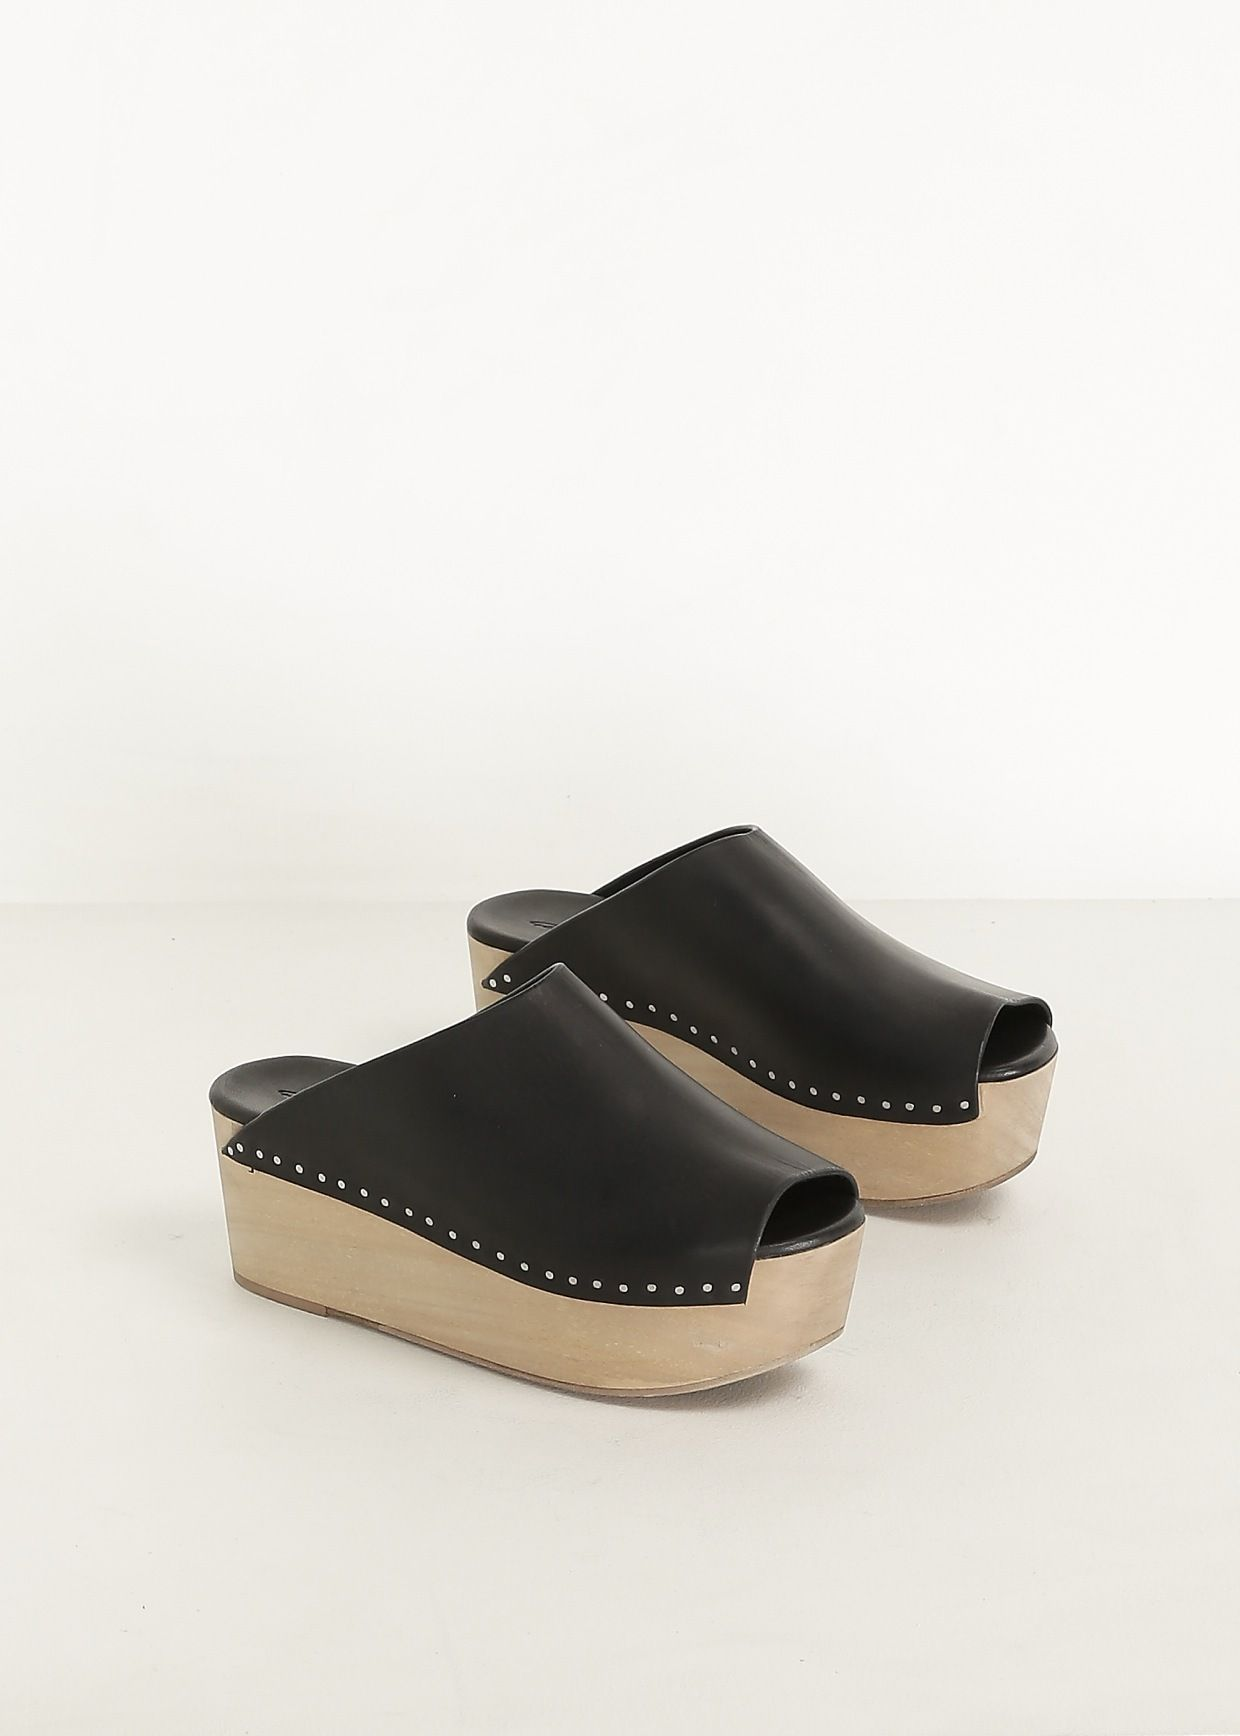 d6bda76edec Leather open-back clog with wooden platform. Peep-toe with exposed silver  nailheads along wedge. Treaded rubber sole